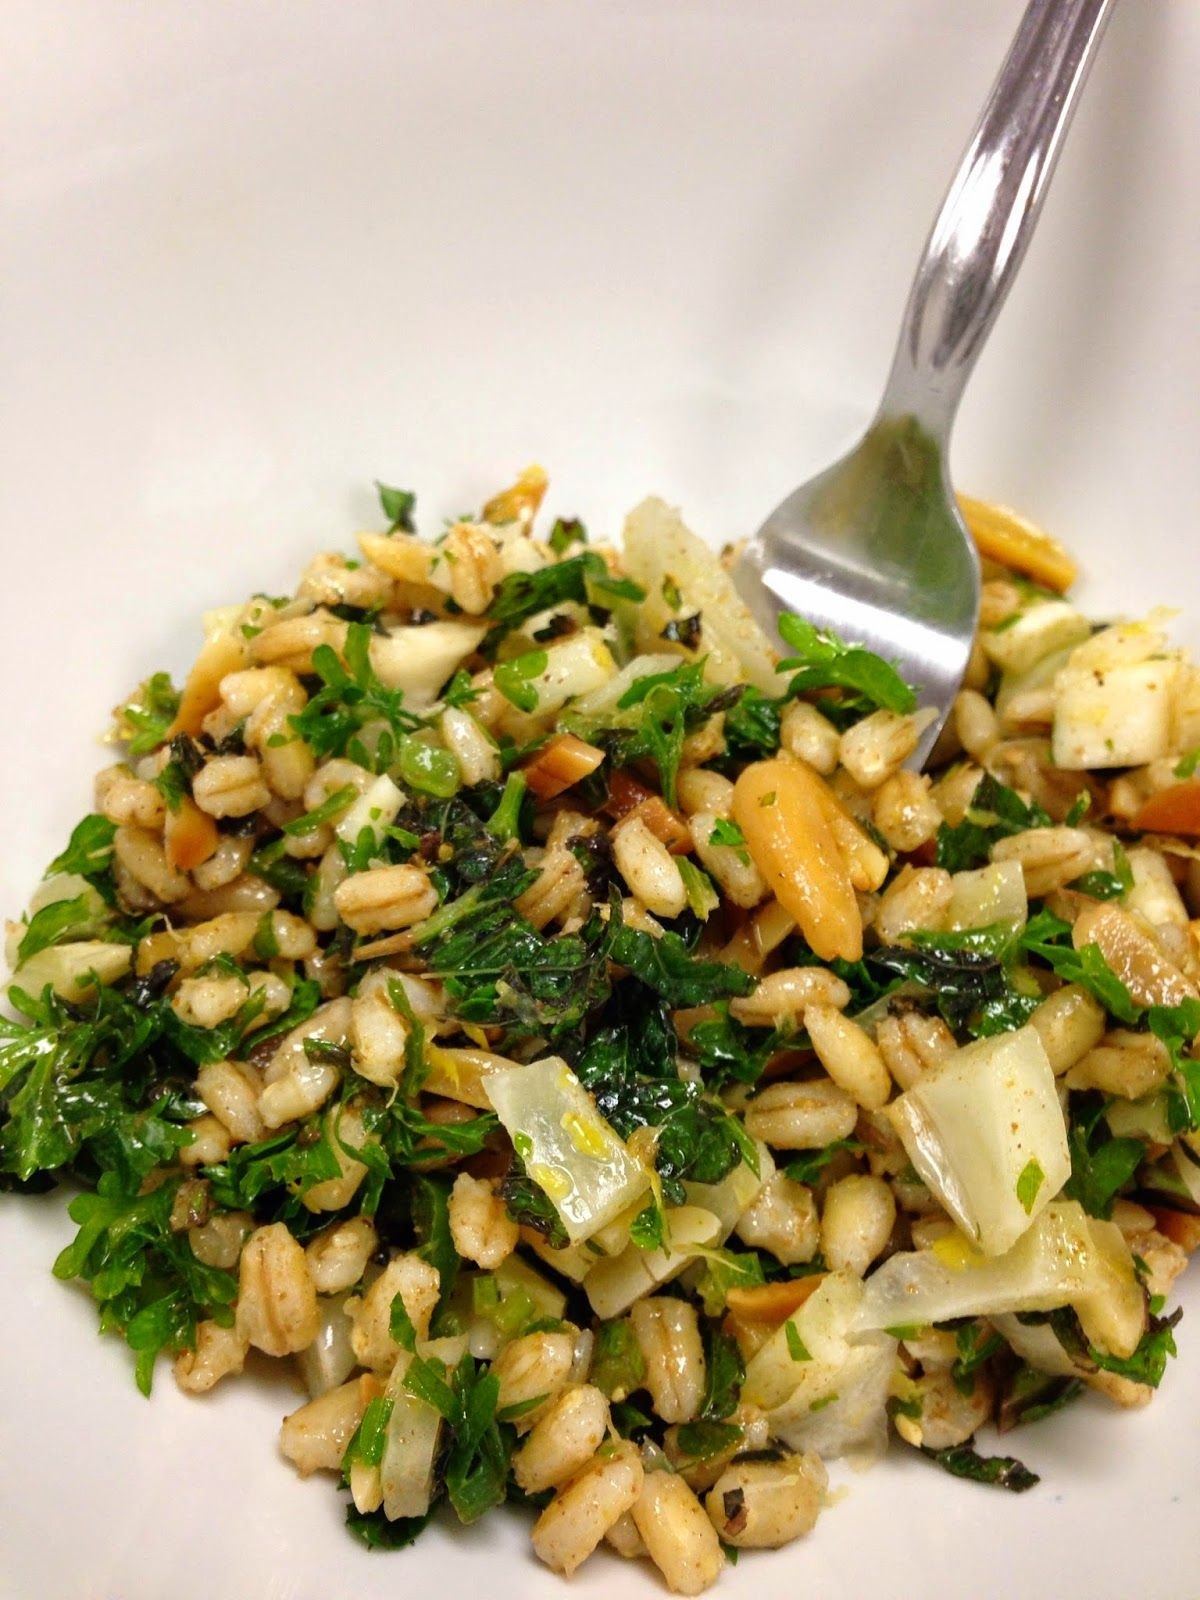 Kitchen Garden Cookbook Barley And Fennel Salad With Toasted Coriander Seeds And Almonds